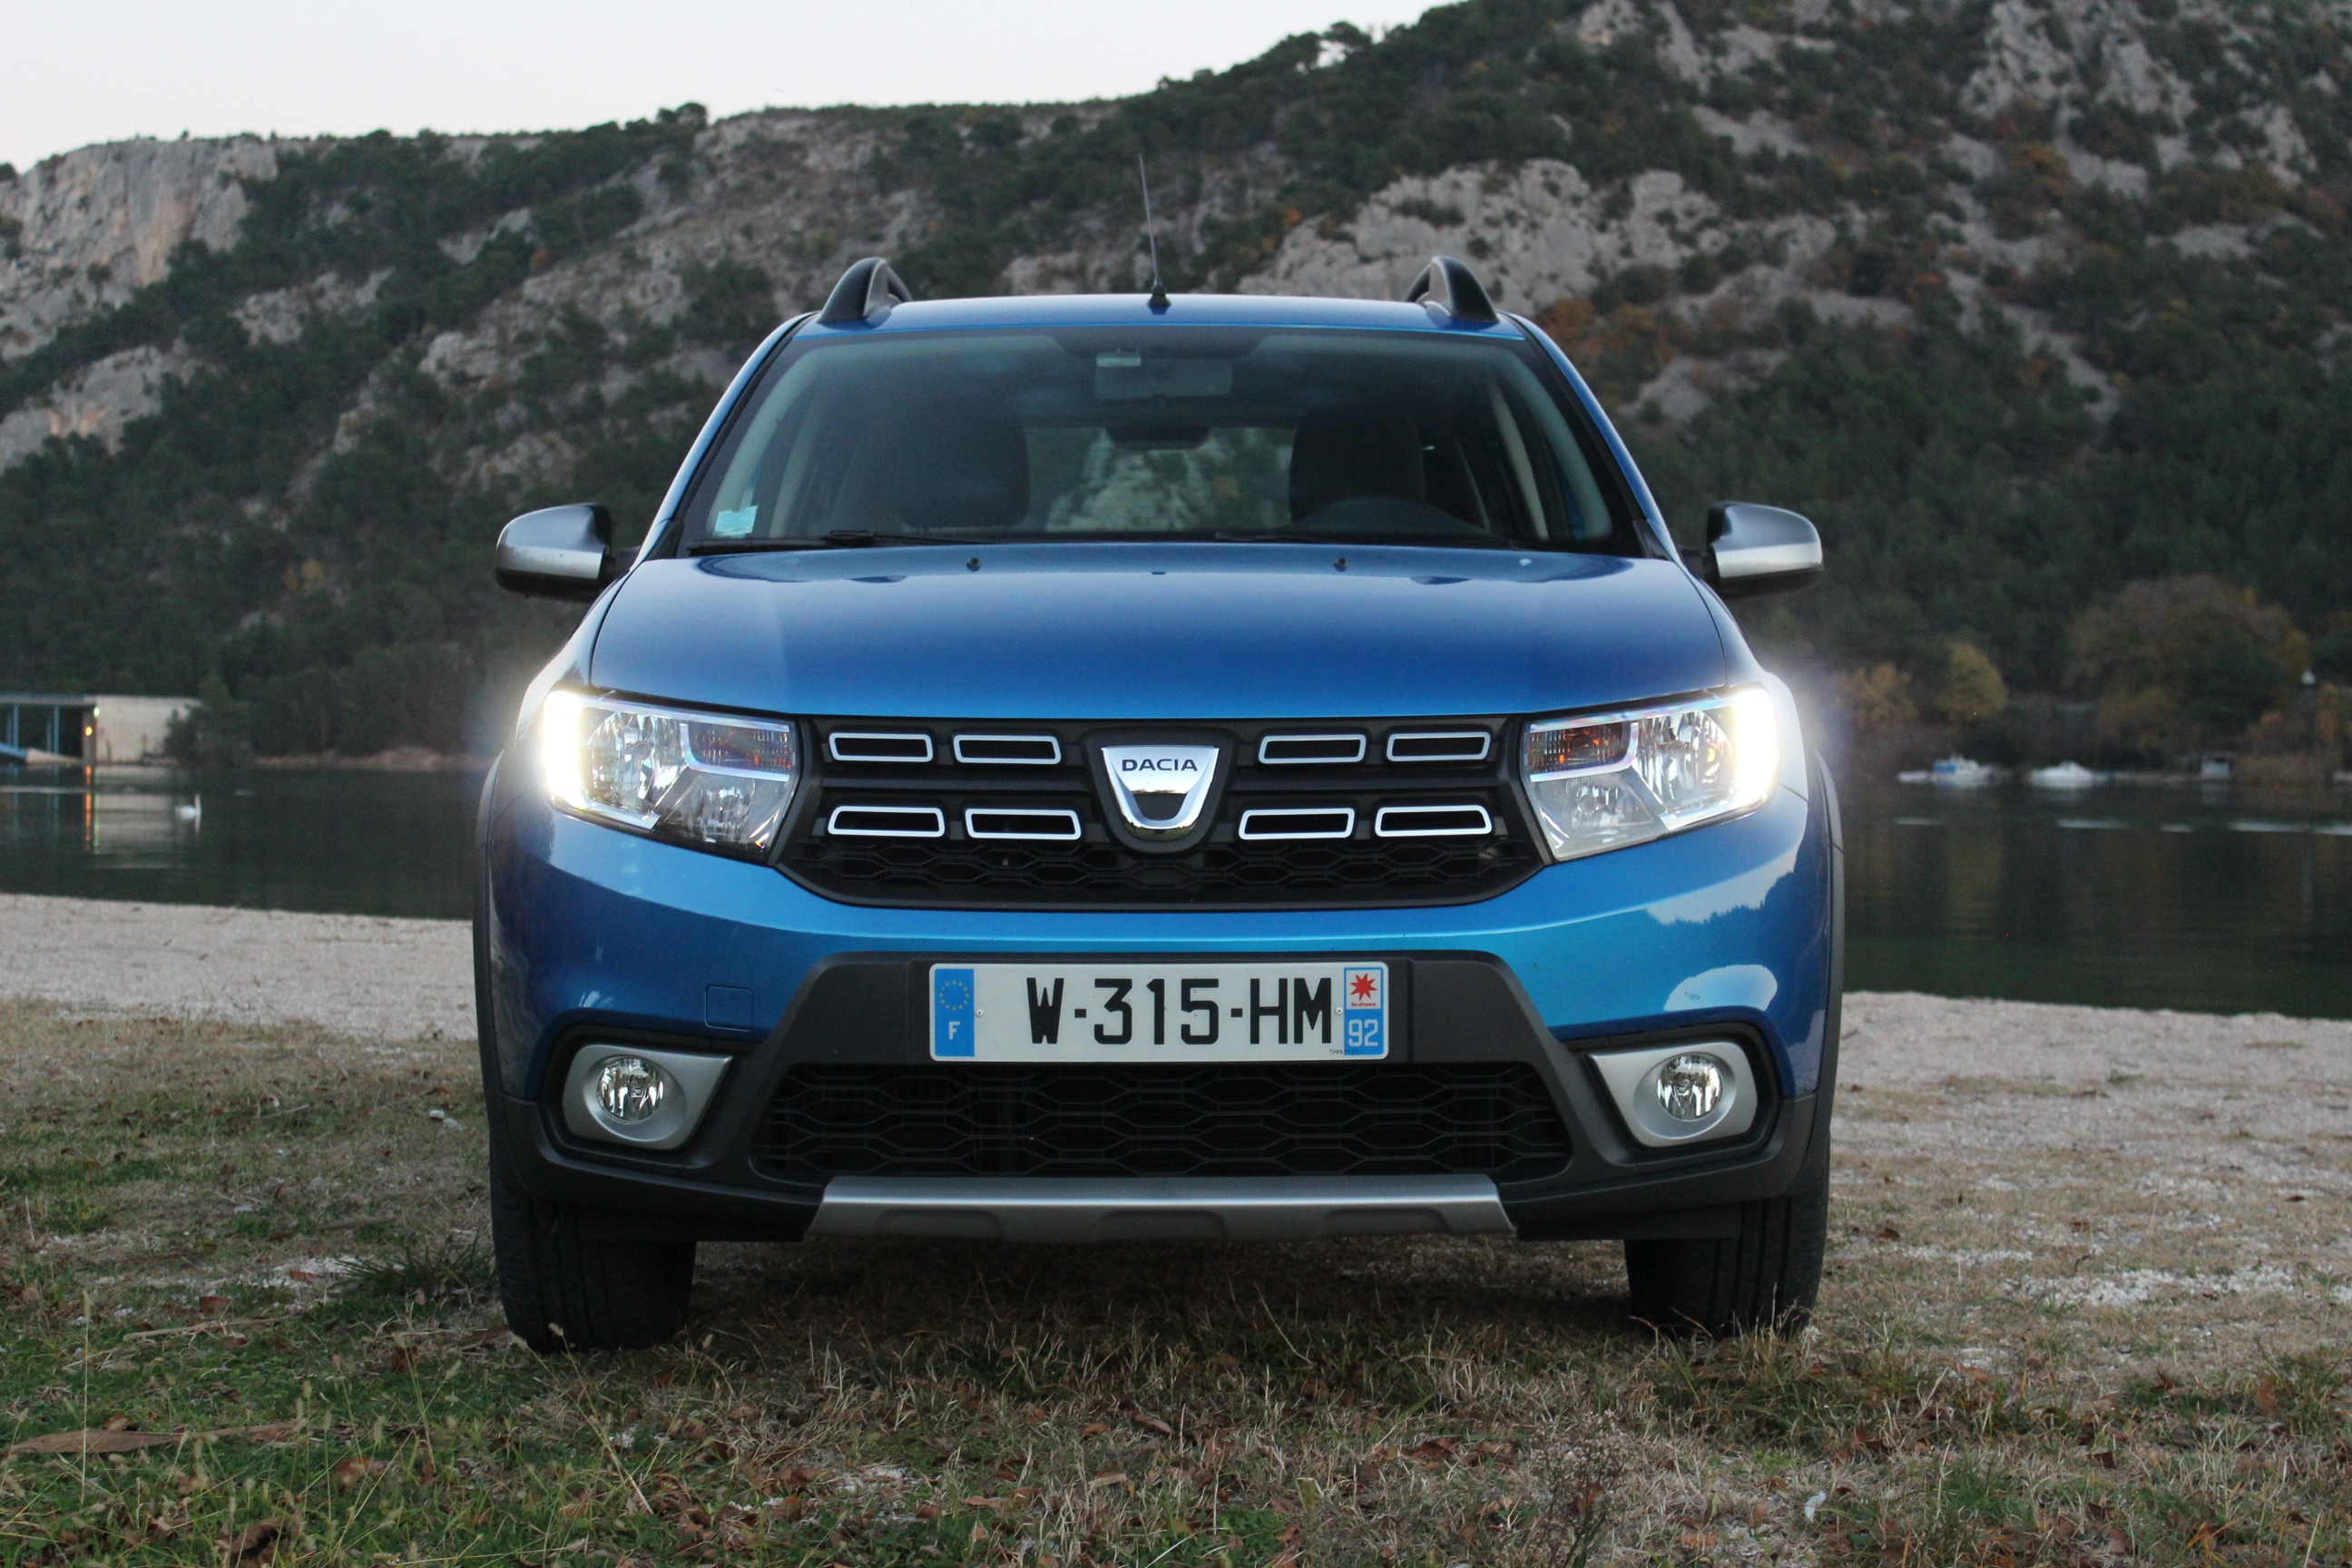 renault dacia prix 2019 dacia duster prix suisse renault reunion photos dacia duster 10th. Black Bedroom Furniture Sets. Home Design Ideas